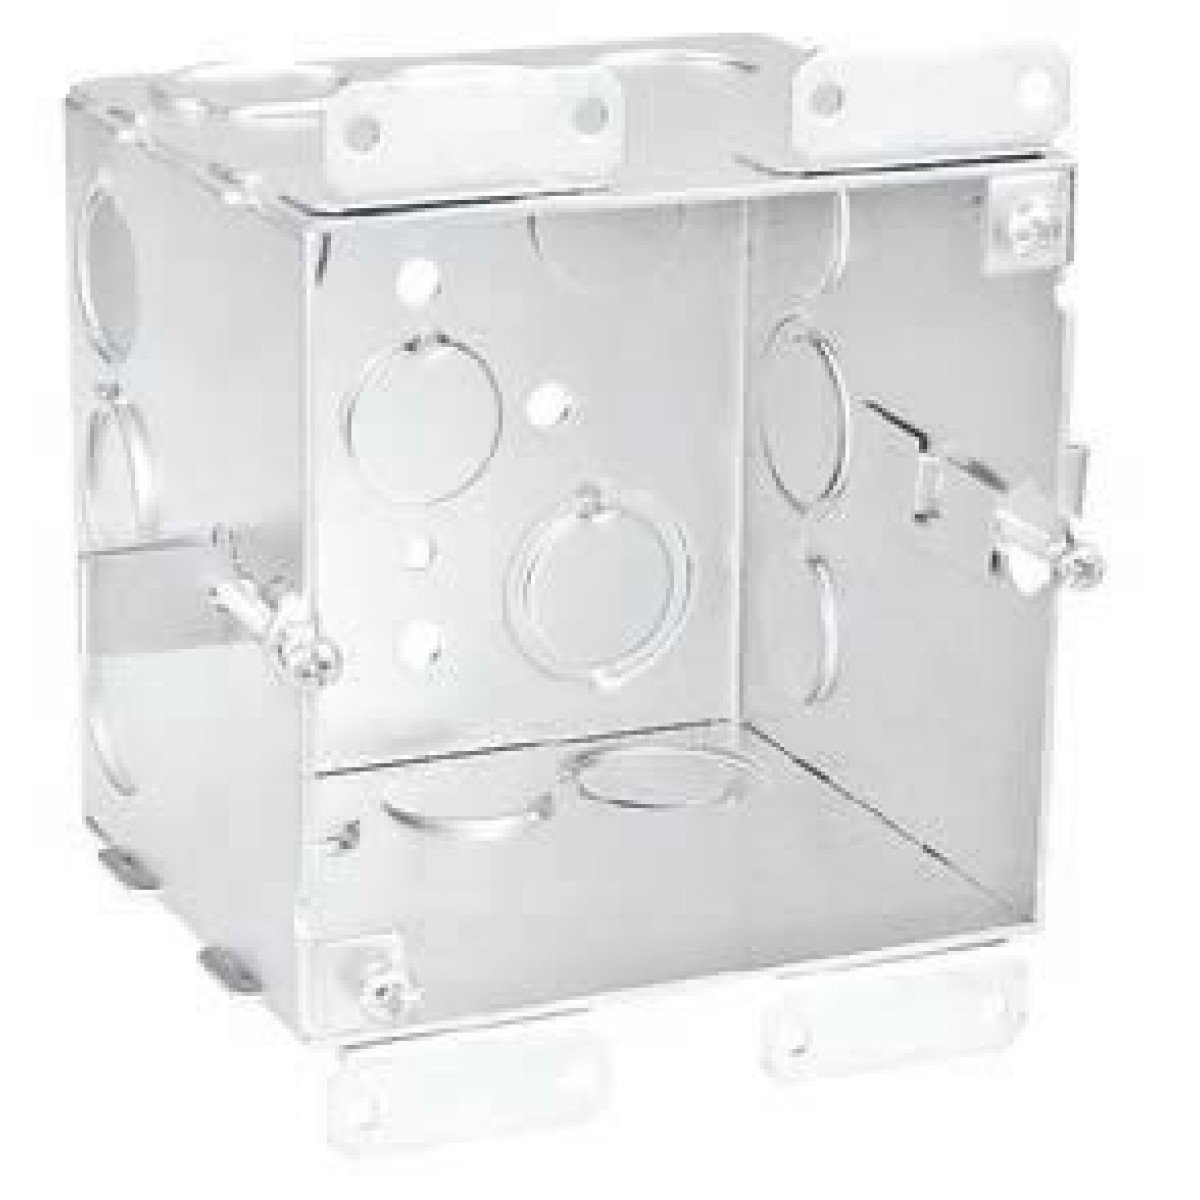 2 Pcs, 4'' Square Old Work Cut-In Box, 1-1/2 In. Deep, (6) 1/2 In. & (6) 1/2-3/4 In. Side Knockouts, .0625 Galvanized Steel to Add Devices, Speakers, Strobes, Alarms, & Devices to Hollow Walls